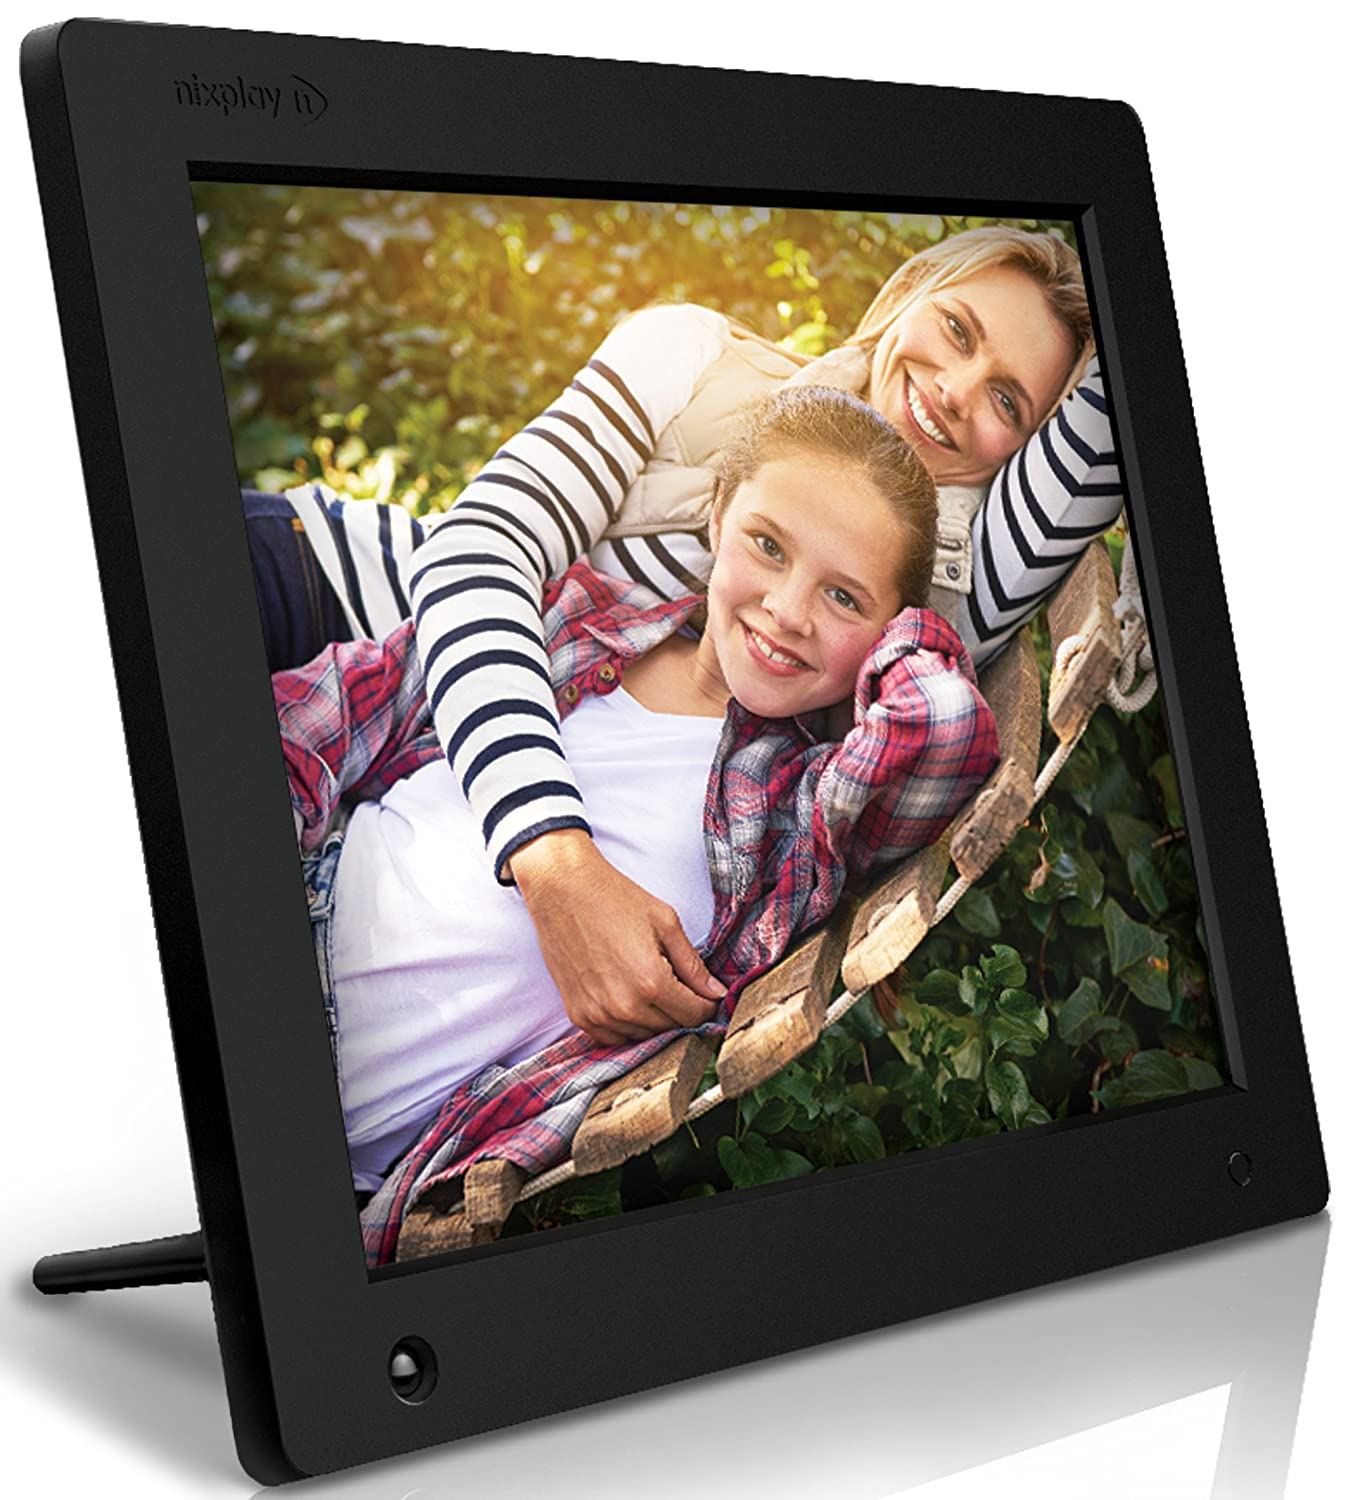 buy nixplay 12 inch wi fi cloud digital photo frame iphone android app email facebook dropbox instagram picasa w12a online at low price in india